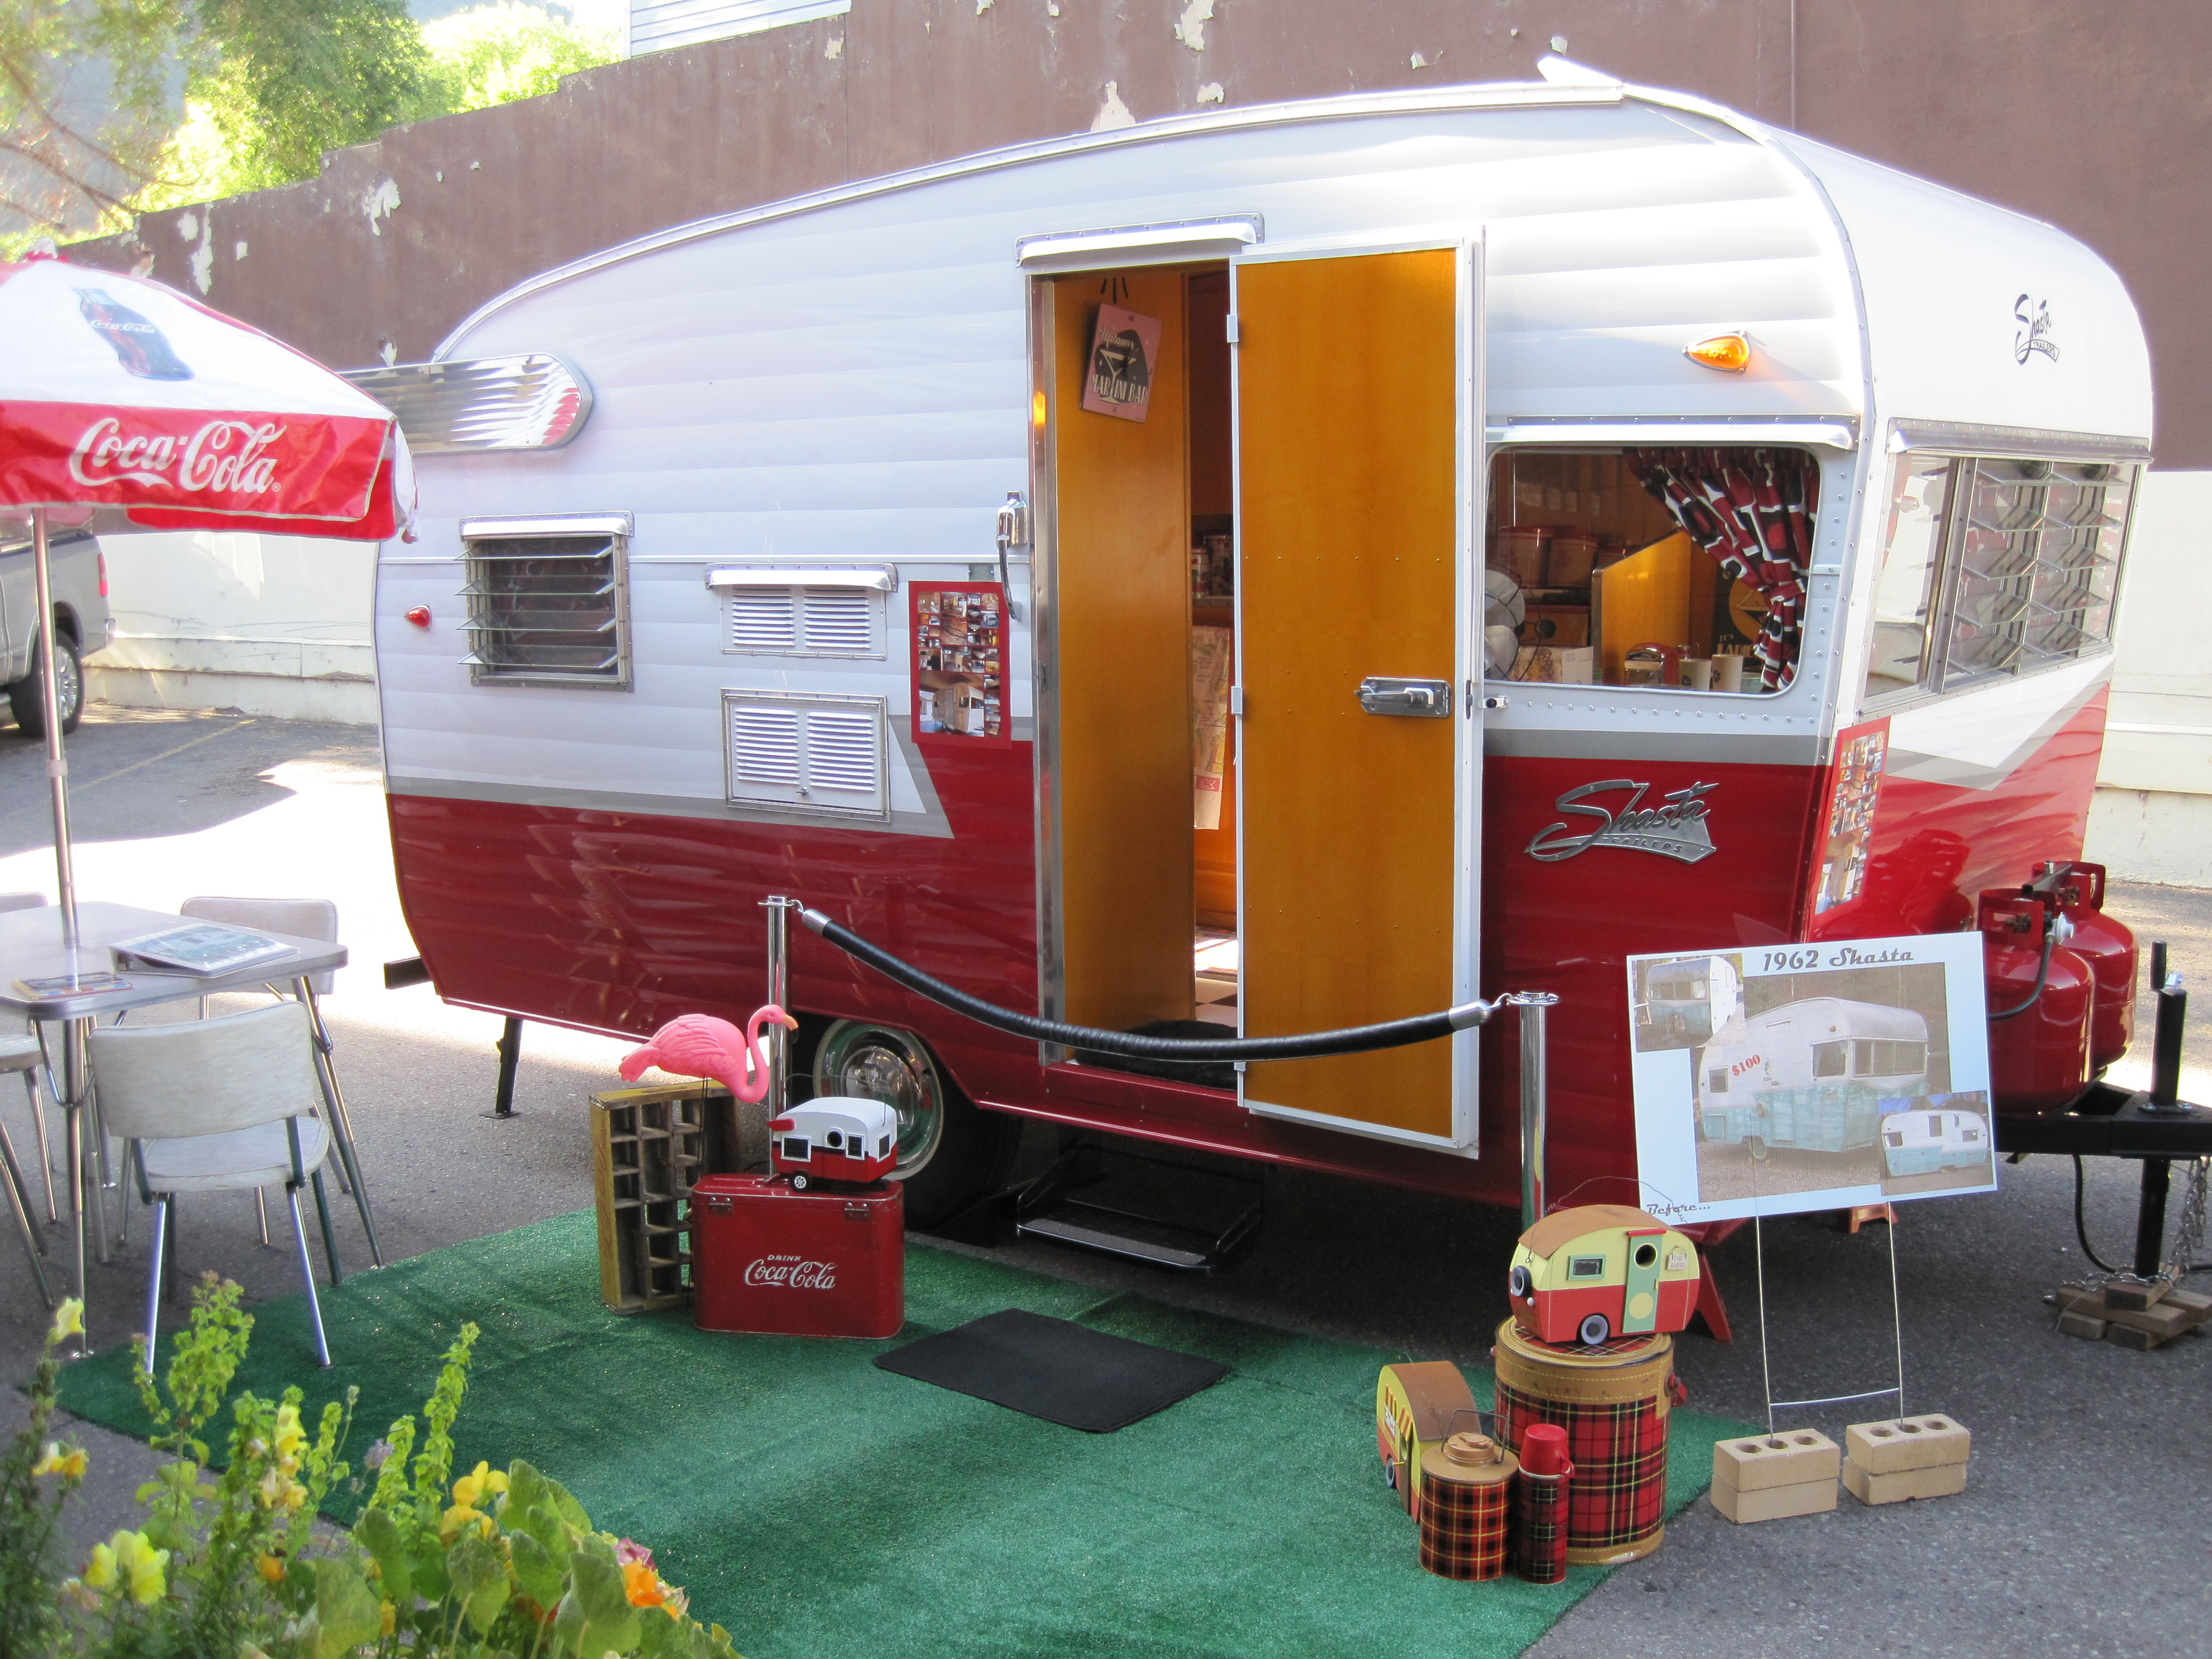 Nash Travel Trailers >> High Demand for Vintage Travel Trailers Sparks the Creation of Retro Trailer Design